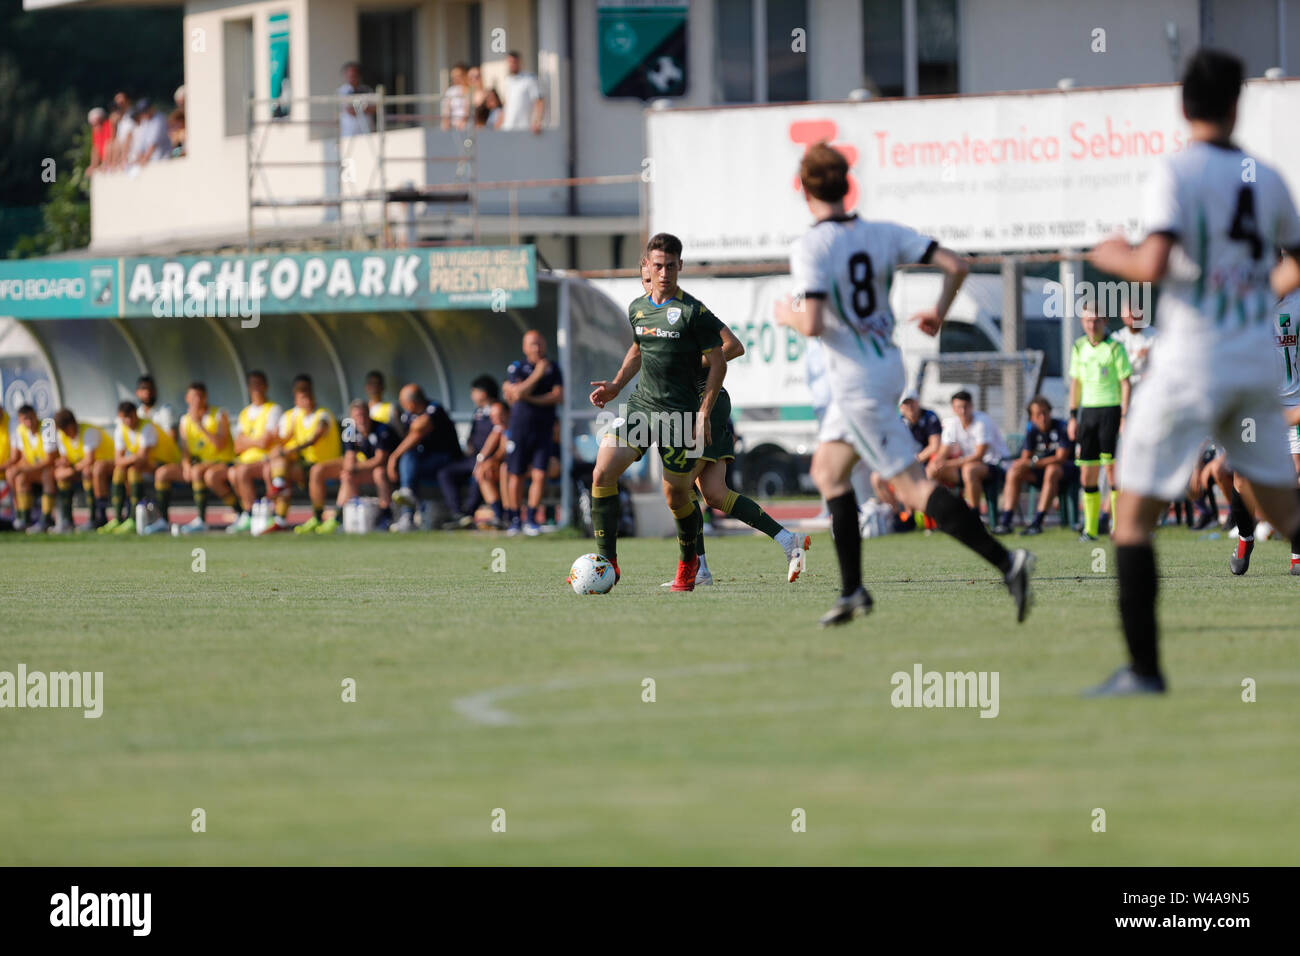 Darfo Boario, Italia. 21st July, 2019. Foto Stefano Nicoli/LaPresse21 luglio 2019 Darfo Boario (Bs), Italia sport calcio Amichevole Brescia Darfo Pre Campionato di calcio Serie A 2019/2020 - Nella foto: MAttia Viviani Photo Stefano Nicoli/LaPresse July 20, 2019 Darfo Boario (Bs), Italy sport soccer Friendly match Brescia Darfo League A TIM 2019/2020 - In the pic: Mattia Viviani Credit: LaPresse/Alamy Live News - Stock Image